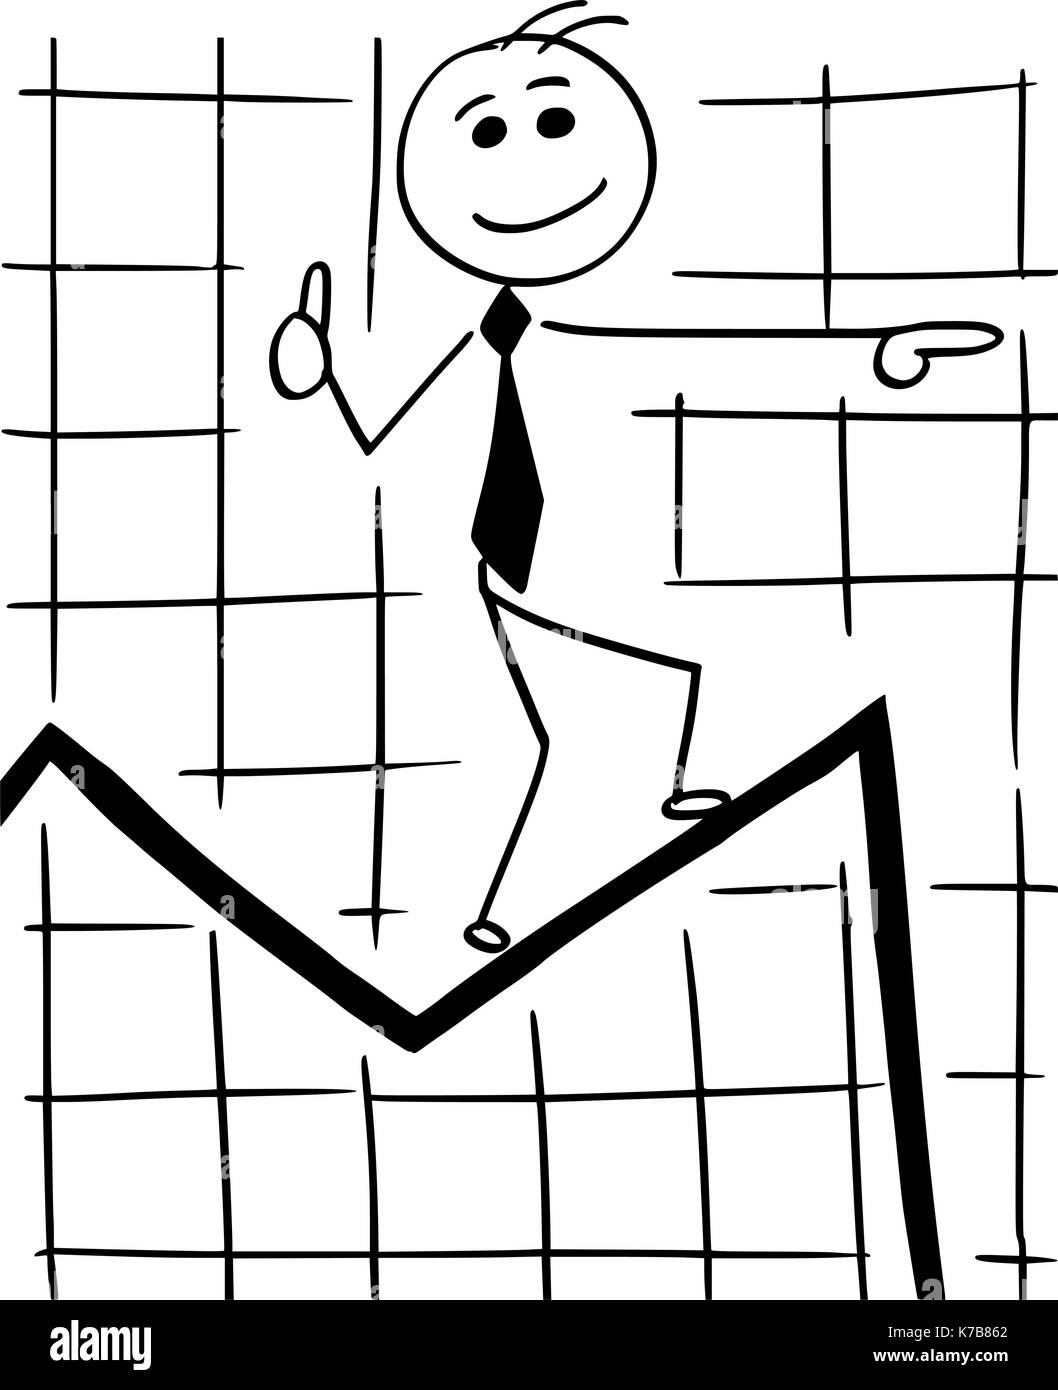 Cartoon stick man conceptual illustration of smiling business man businessman walking on graph chart line expecting great future and ignoring the near - Stock Vector